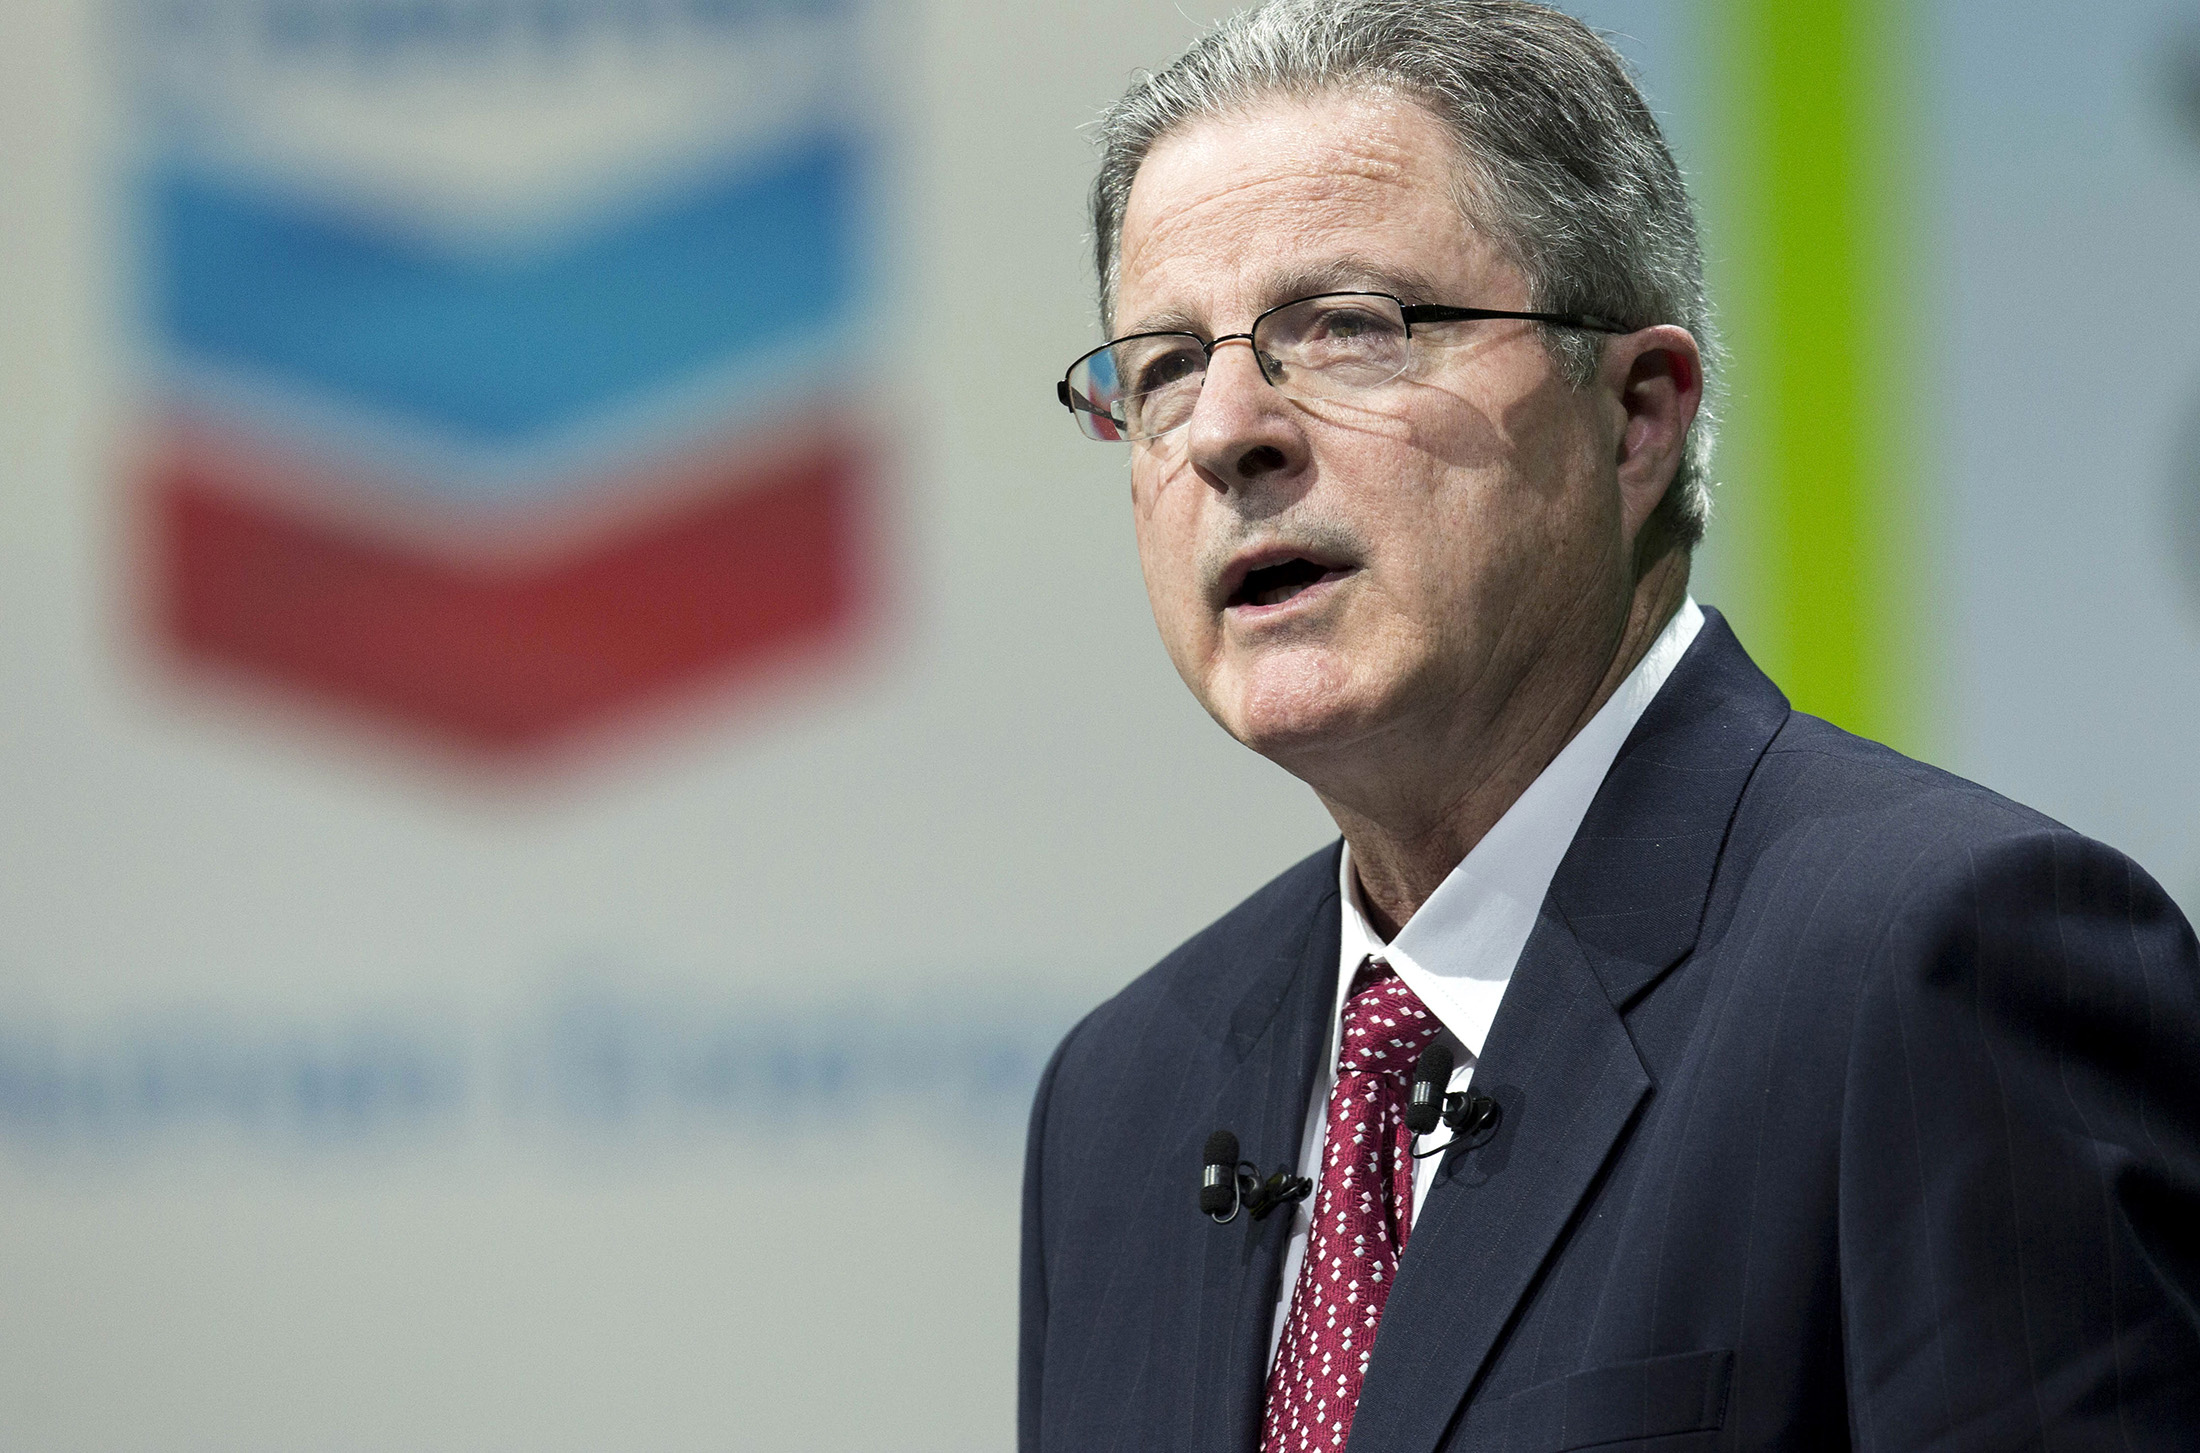 chevron ceo watson plans to step down wsj reports bloomberg